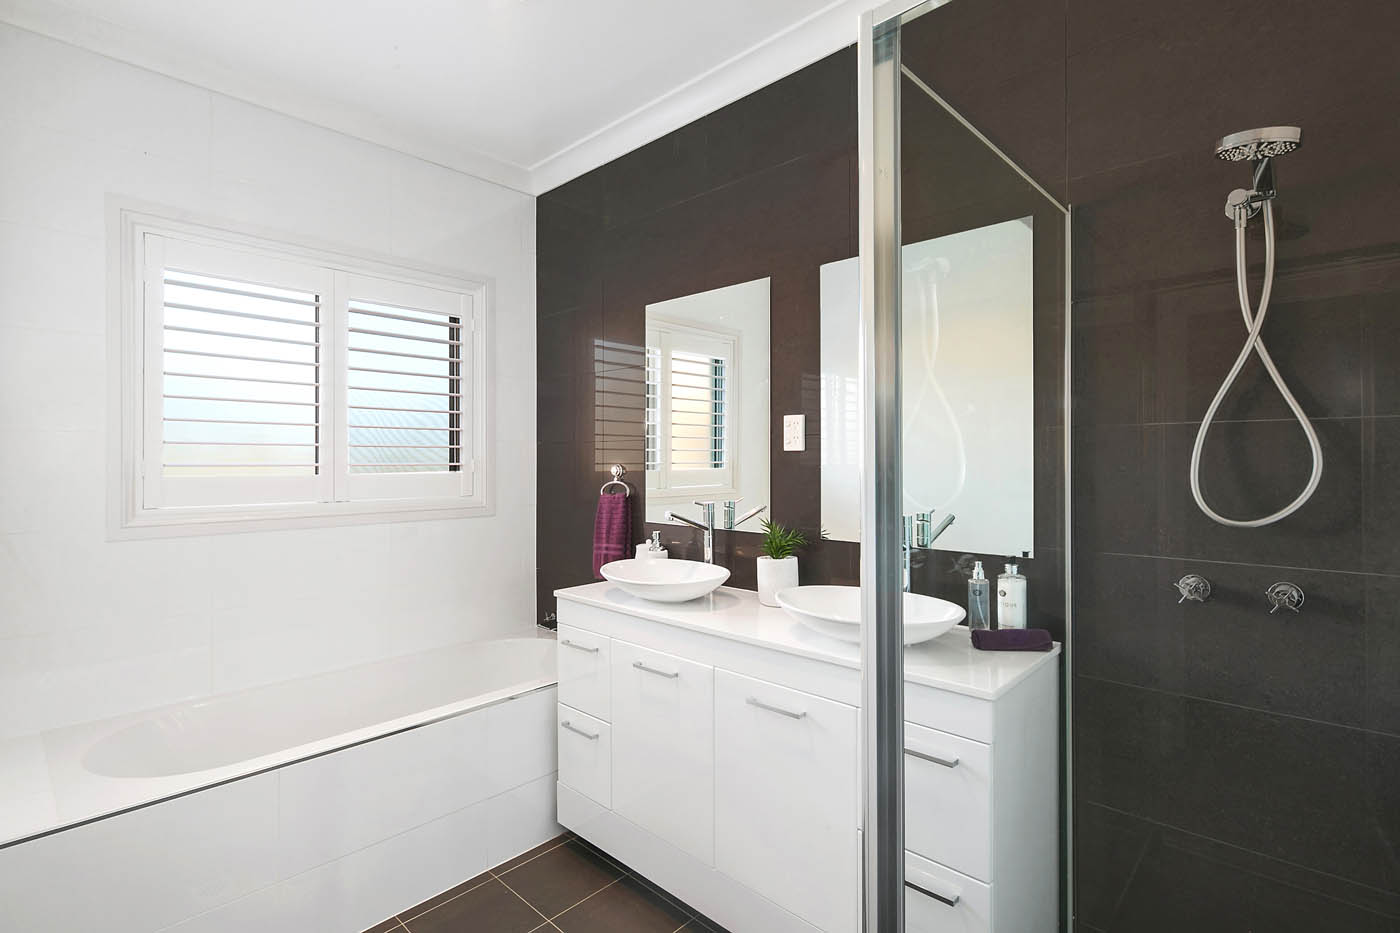 En-suite with high quality finish